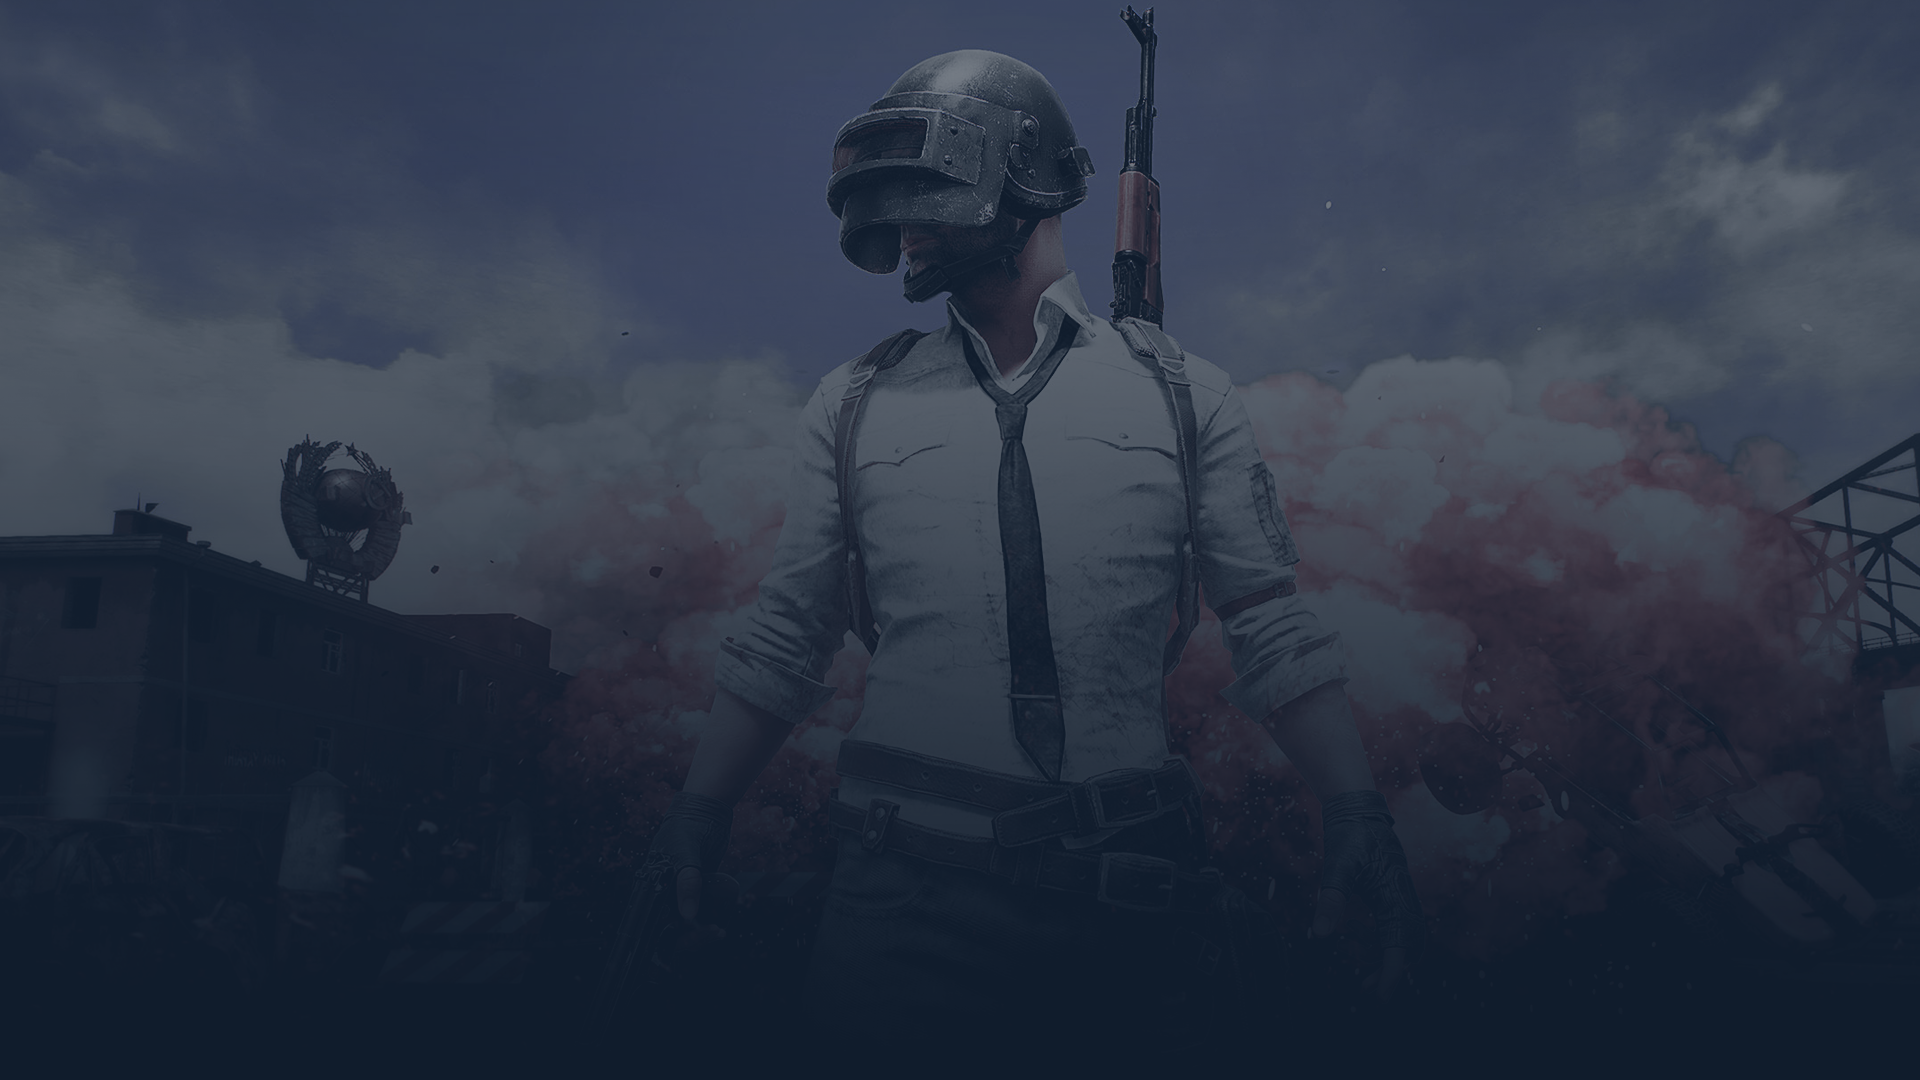 Pubg Wallpapers By Zedge: Wallpaper Hd Evil Geniuses